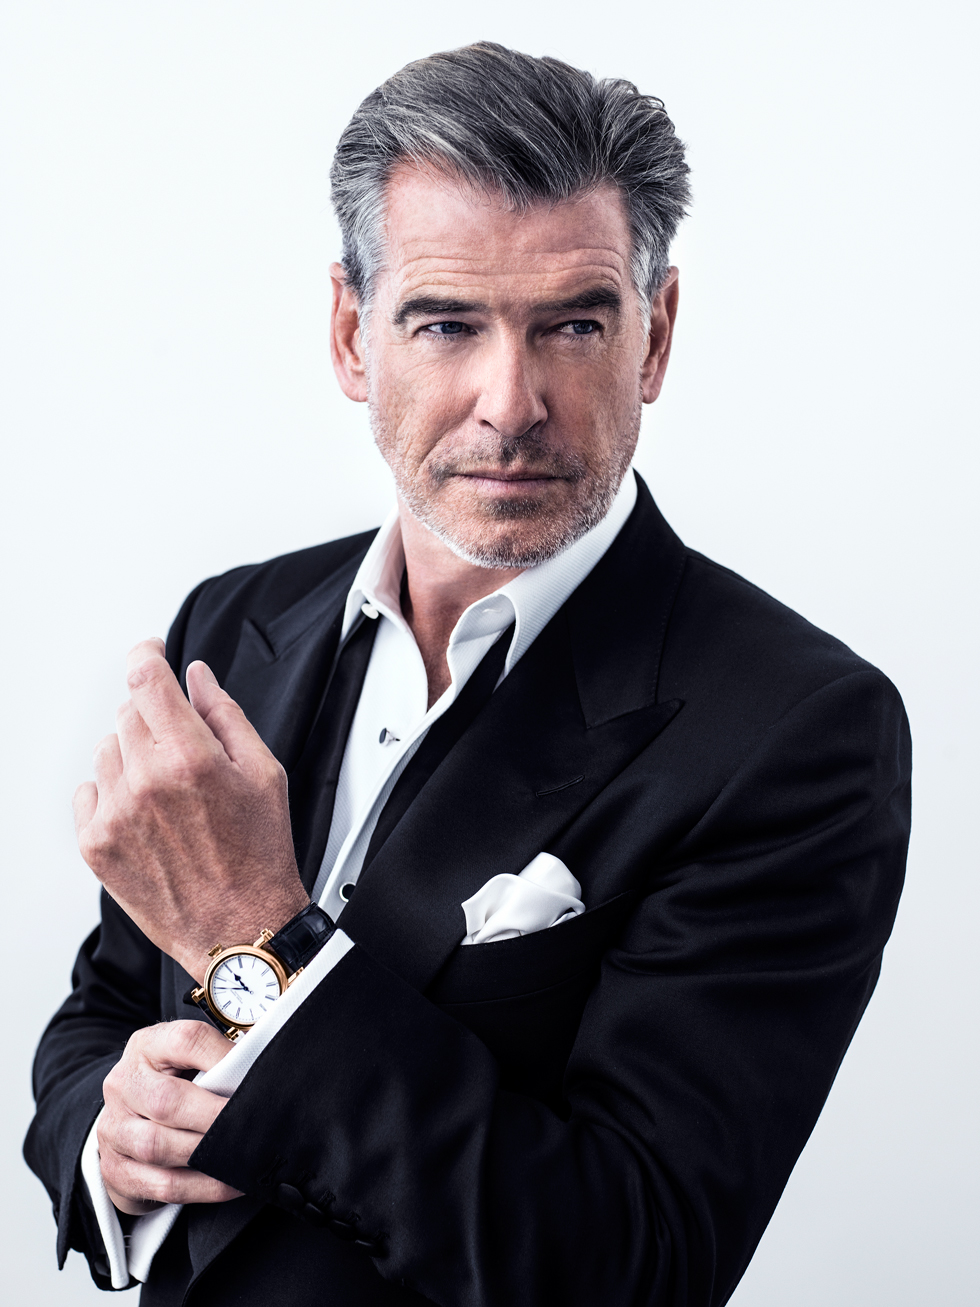 Pierce-Brosnan-for-Speake-Marin_1-Lres